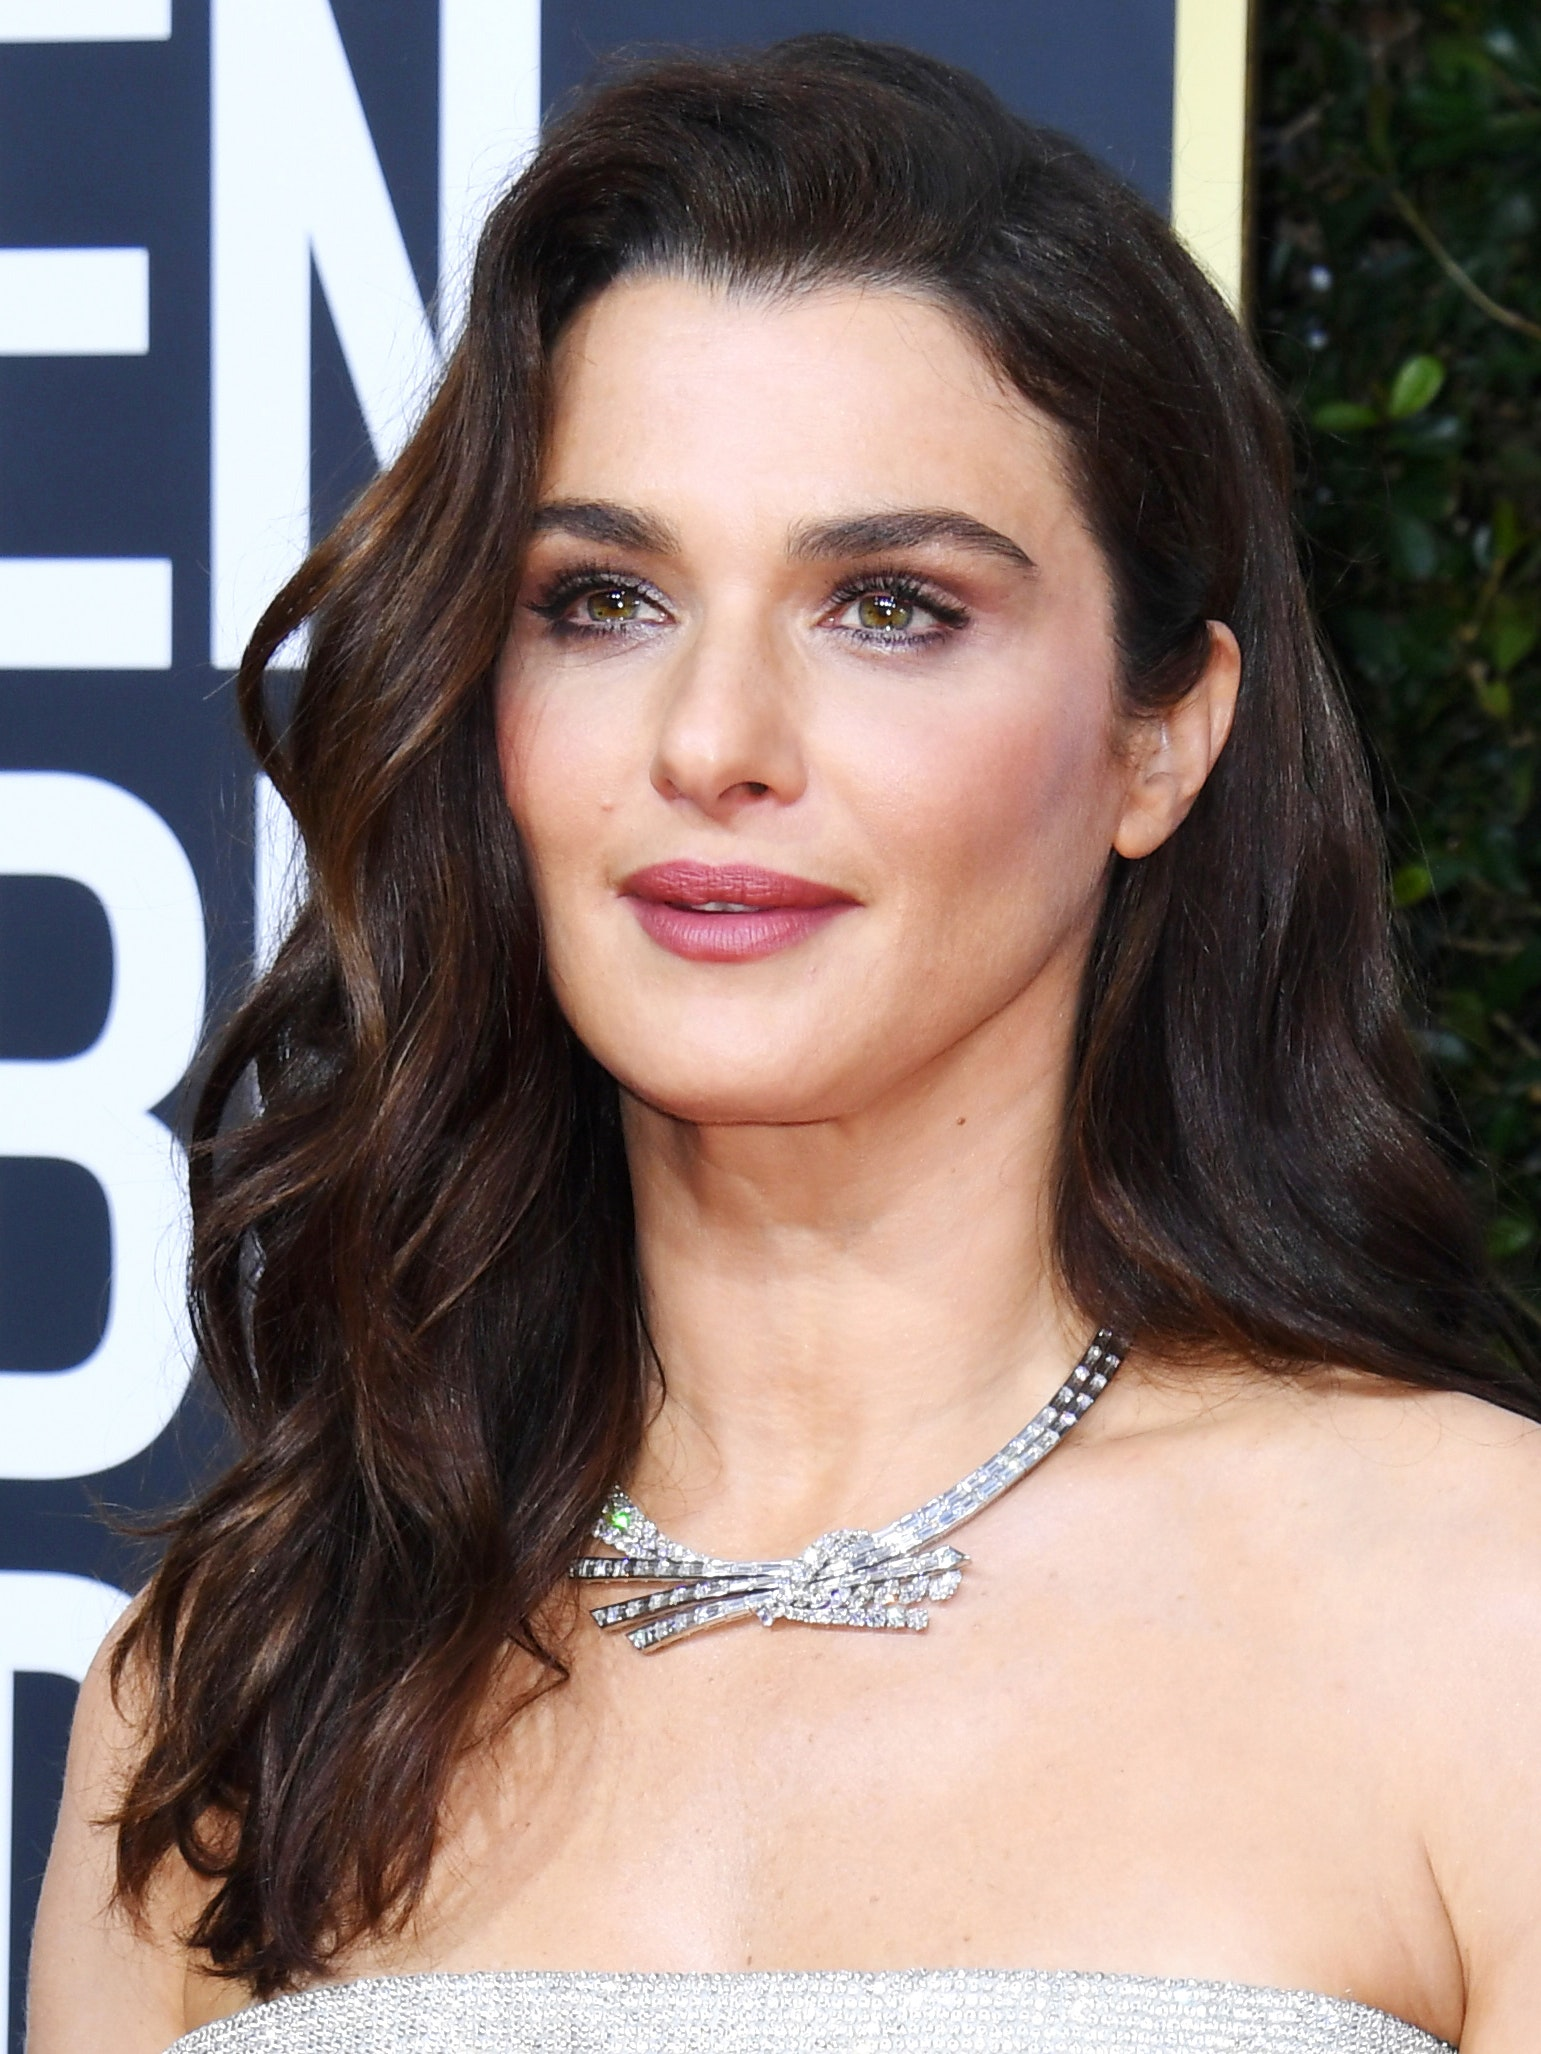 Rachel Weisz Golden Globes hair and makeup look 2020